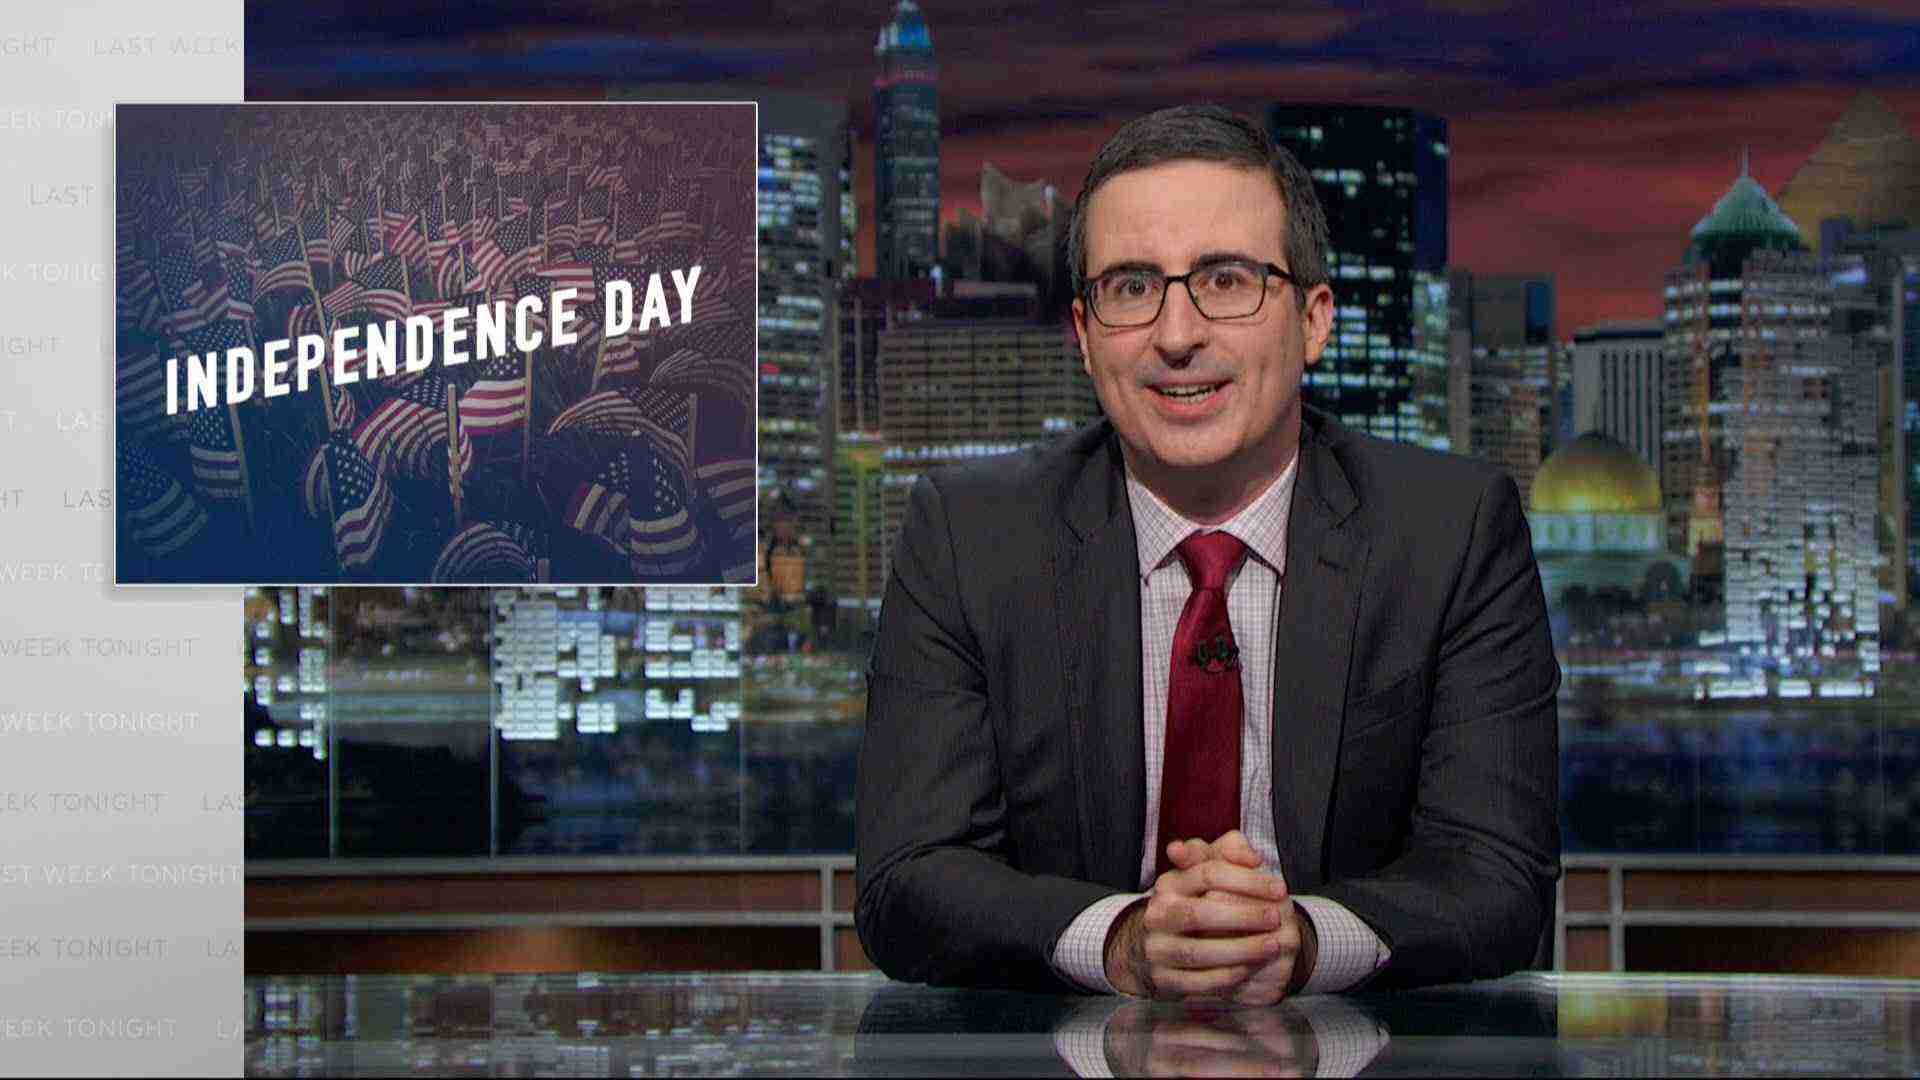 Independence Day (Web Exclusive): Last Week Tonight with John Oliver (HBO)